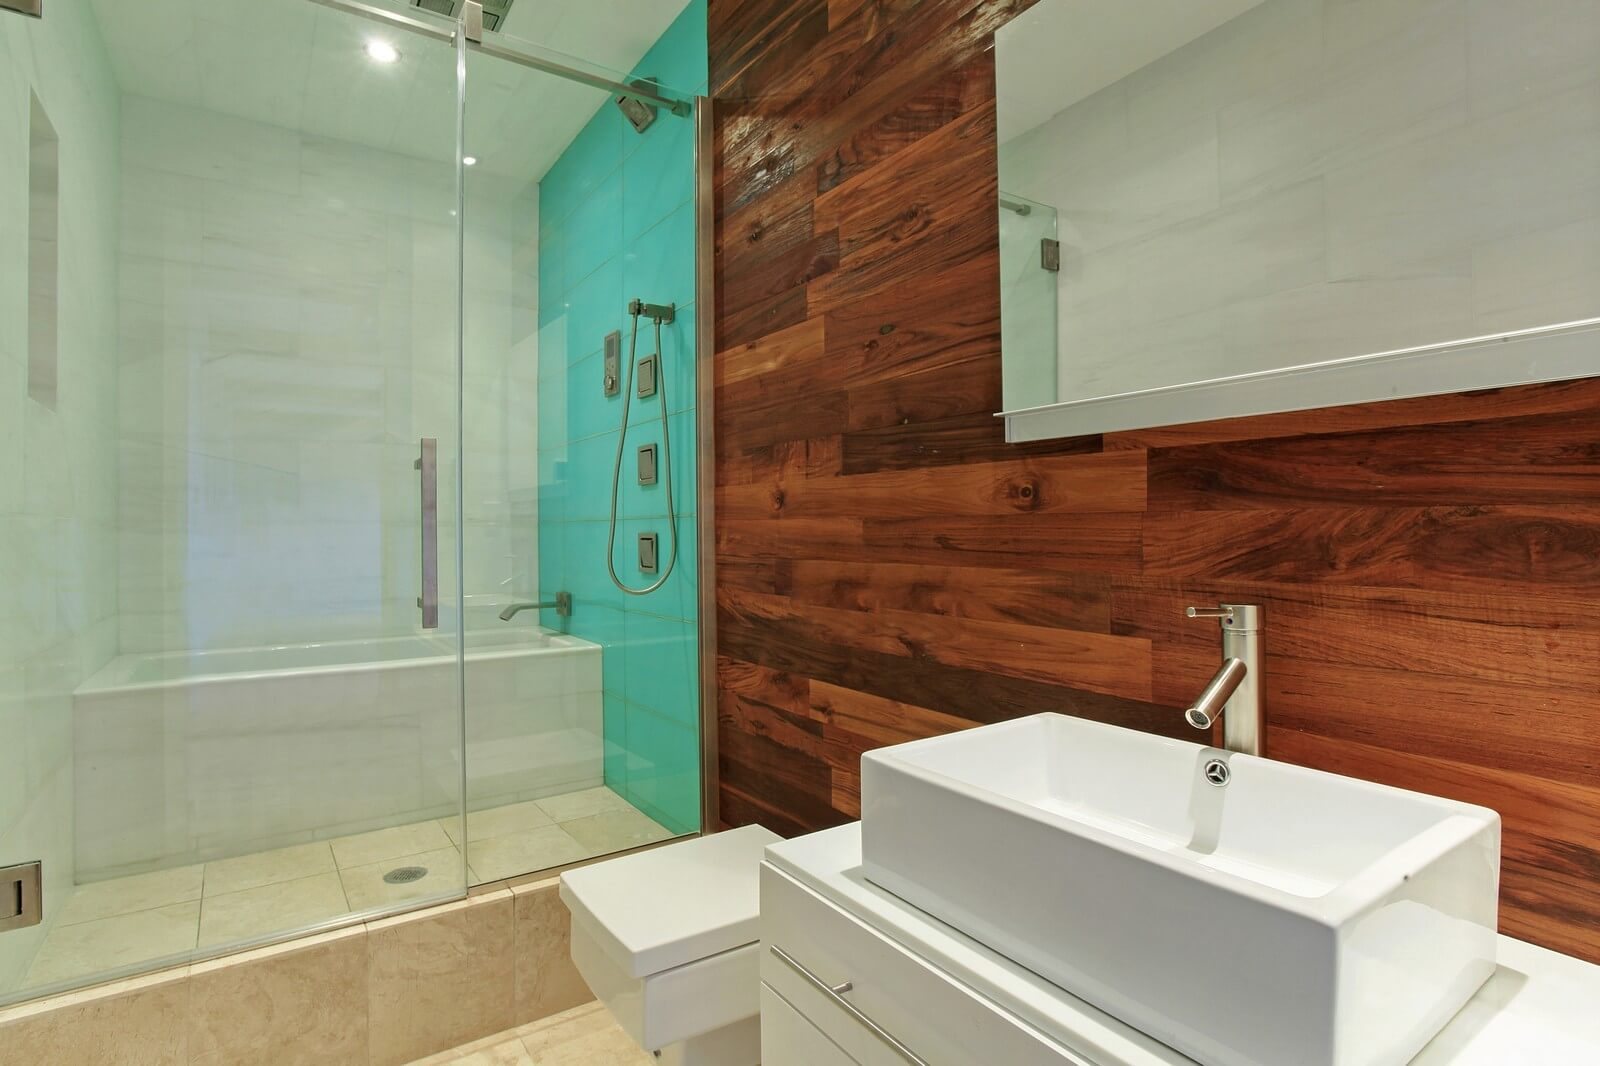 This bathroom looks very beautiful, isn't it? Why do we find it fine? Contemporary sanitary engineering hints at comfort, high quality ECO-friendly finish makes the bathroom look attractive. Pay attention to the use of the aquamarine color. This fine color is known to be associated primarily with water. The wall decorated in aquamarine blends perfectly with both the freestanding bathtub of snow white and glass surfaces of the door and window. Do you need radical changes in your condo interior design? Our team of professional interior designers is always ready to help you make your facility stand out!